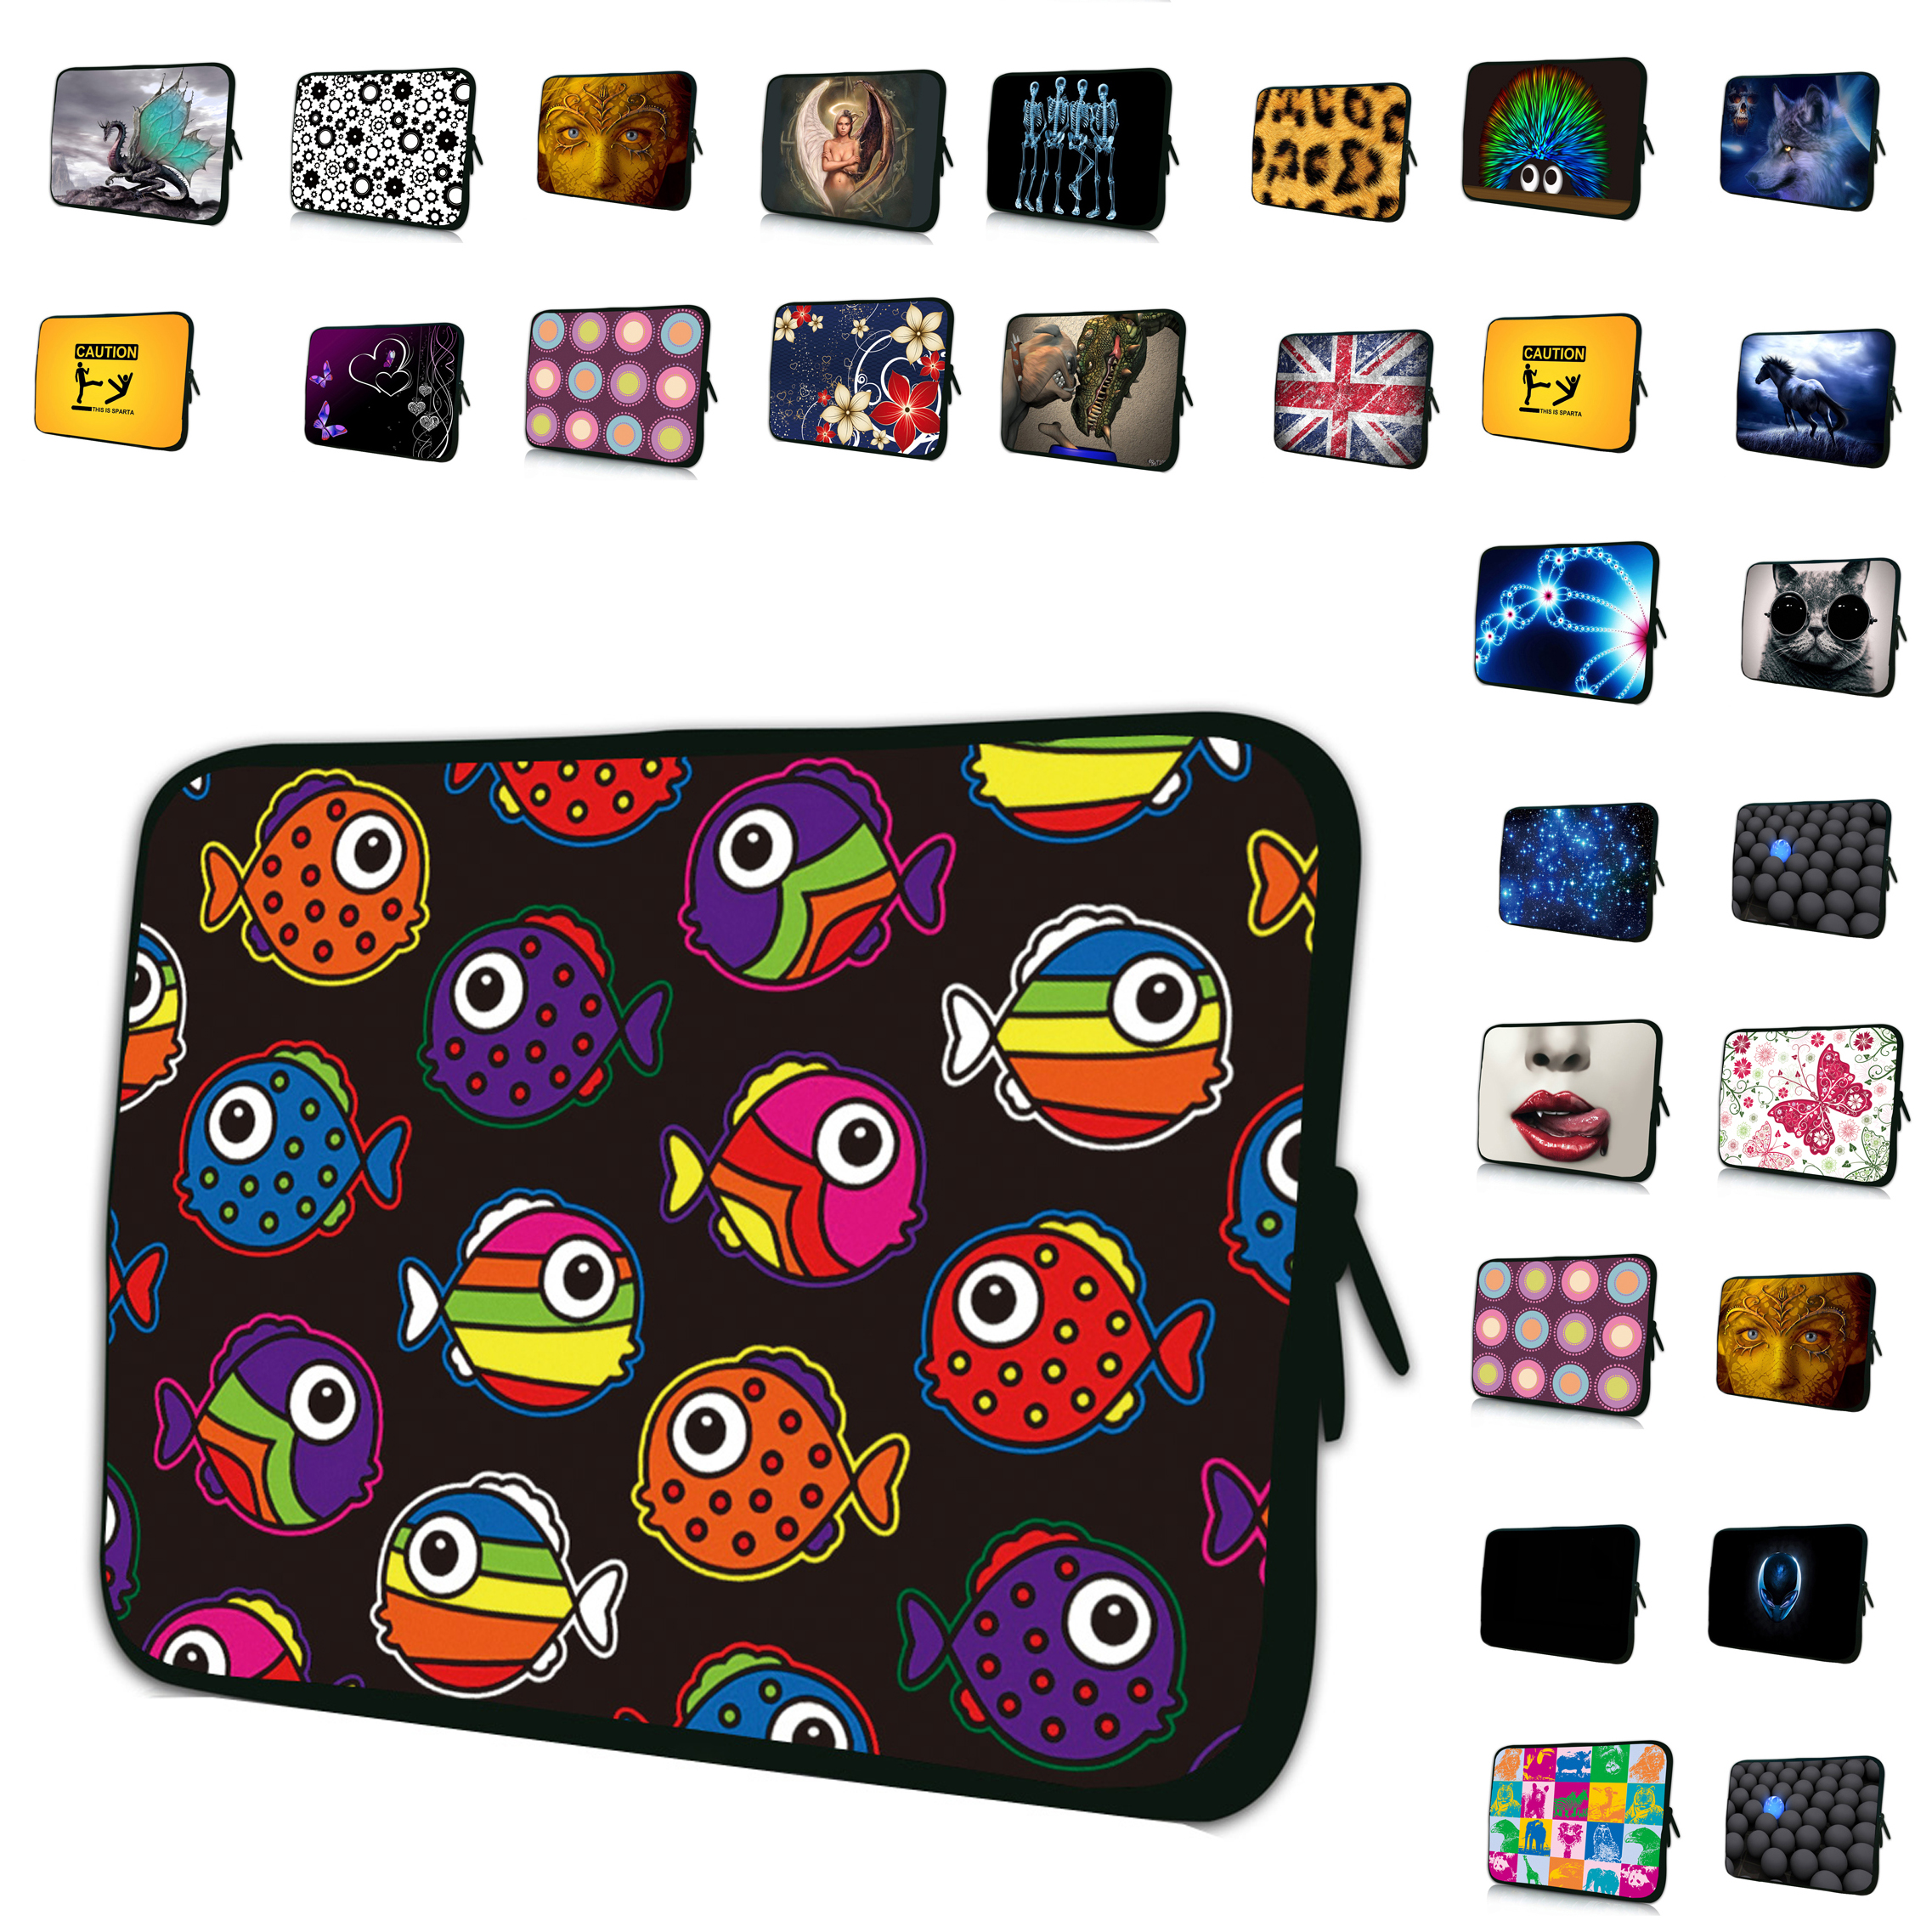 New Notebook BAG 7 10 12 13 14 15 17 17.3 15.4 13.3 11.6 Cover Laptop Sleeve Bags Cases For Macbook Acer Lenovo Dell Samsung HP(China)